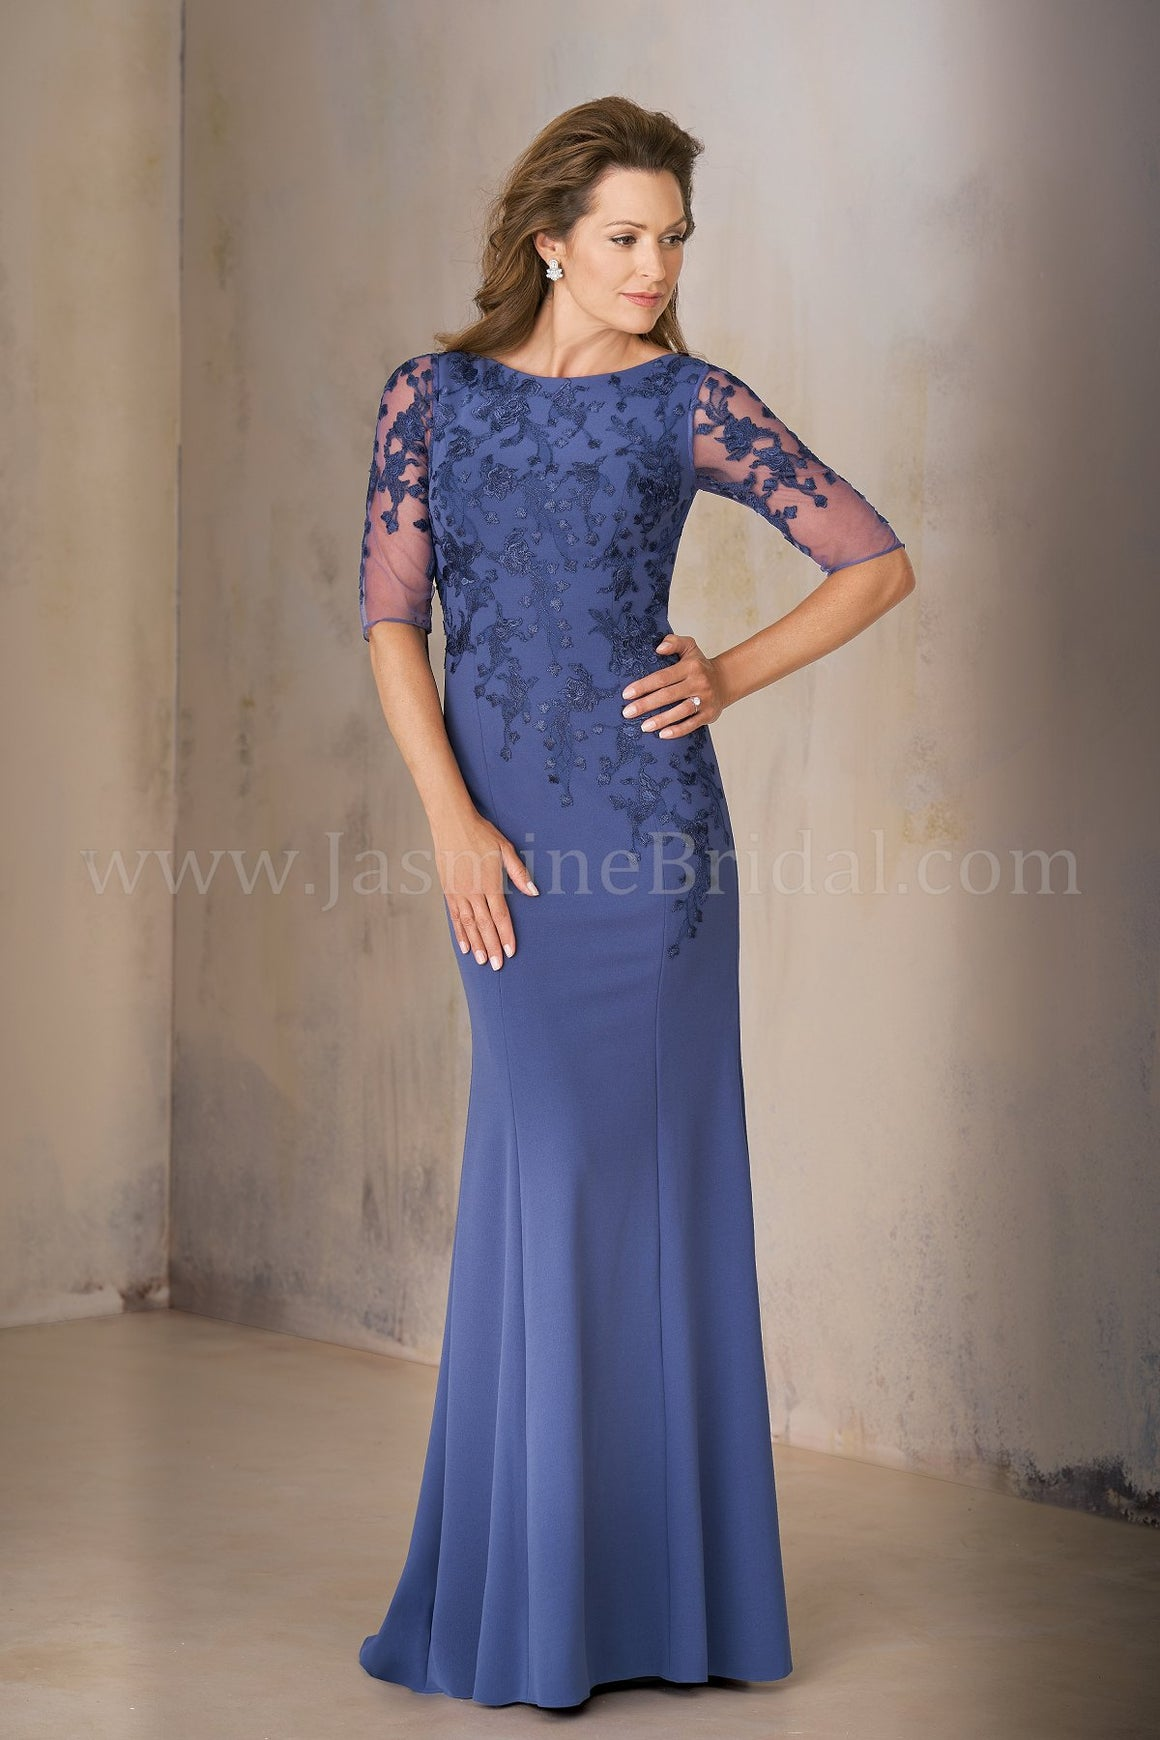 Jasmine K208002U Long Jewel Neckline Stretch Crepe w/ Lace MOB Dress with Sleeves  | Multiple Colors